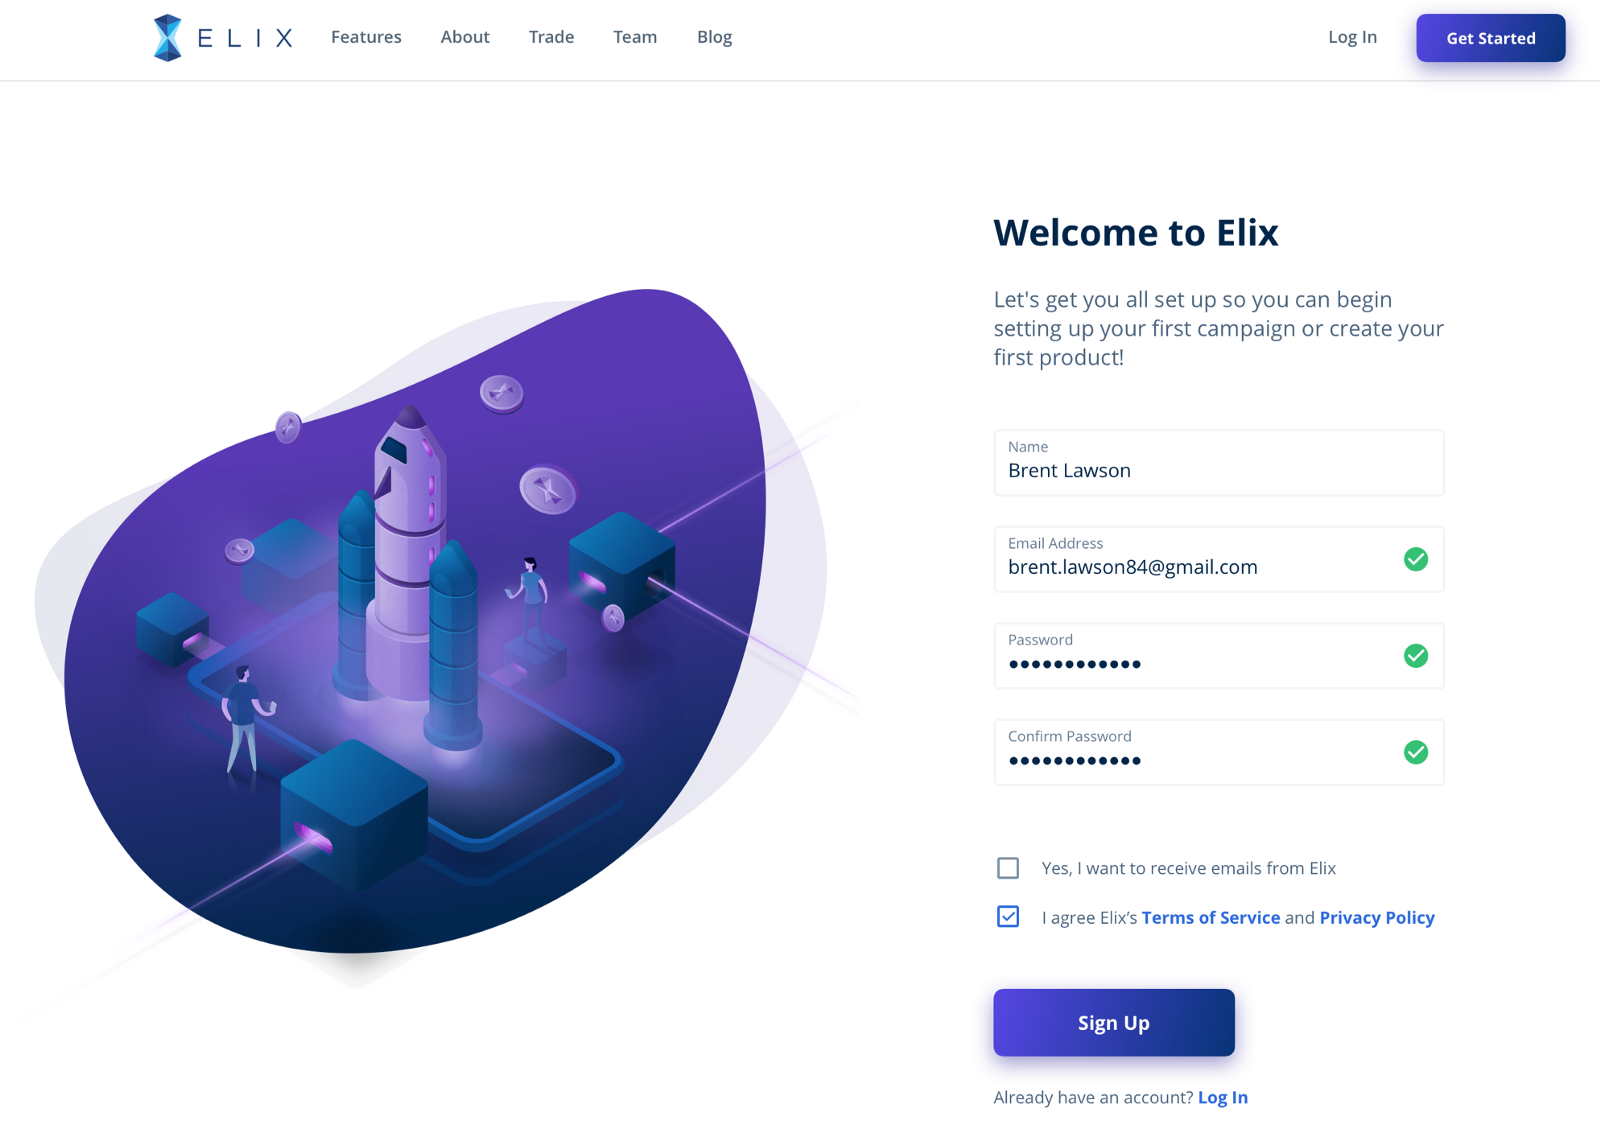 /the-elix-web-portal-is-out-62e82fb40a65 feature image